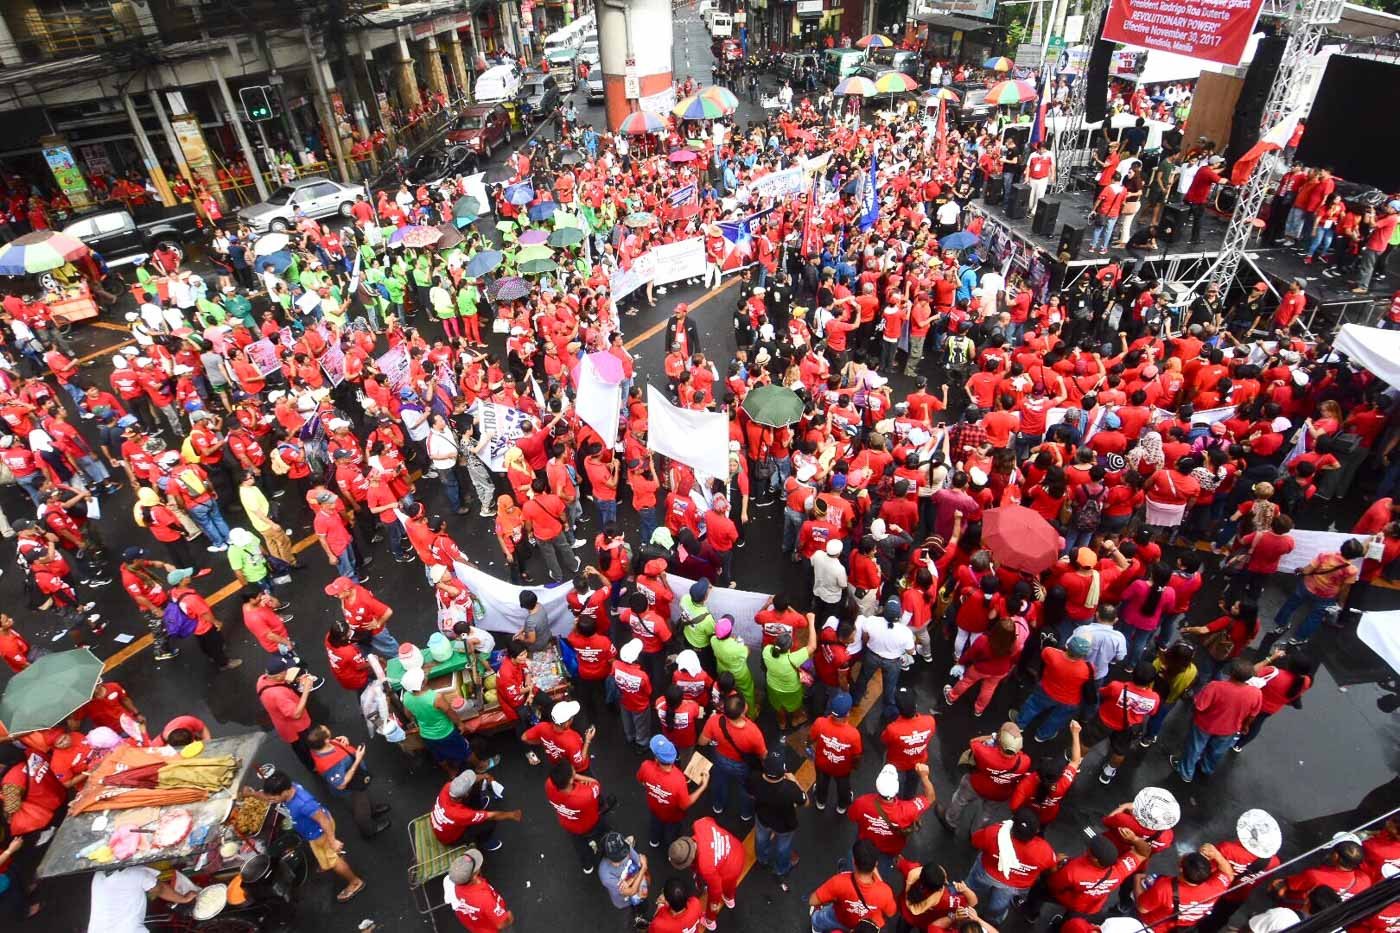 'REVGOV'. Pro-Duterte demonstrators gather in Mendiola, Manila on November 30, 2017 calling for the establishment of a revolutionary government. All photos by Angie de Silva/Rappler